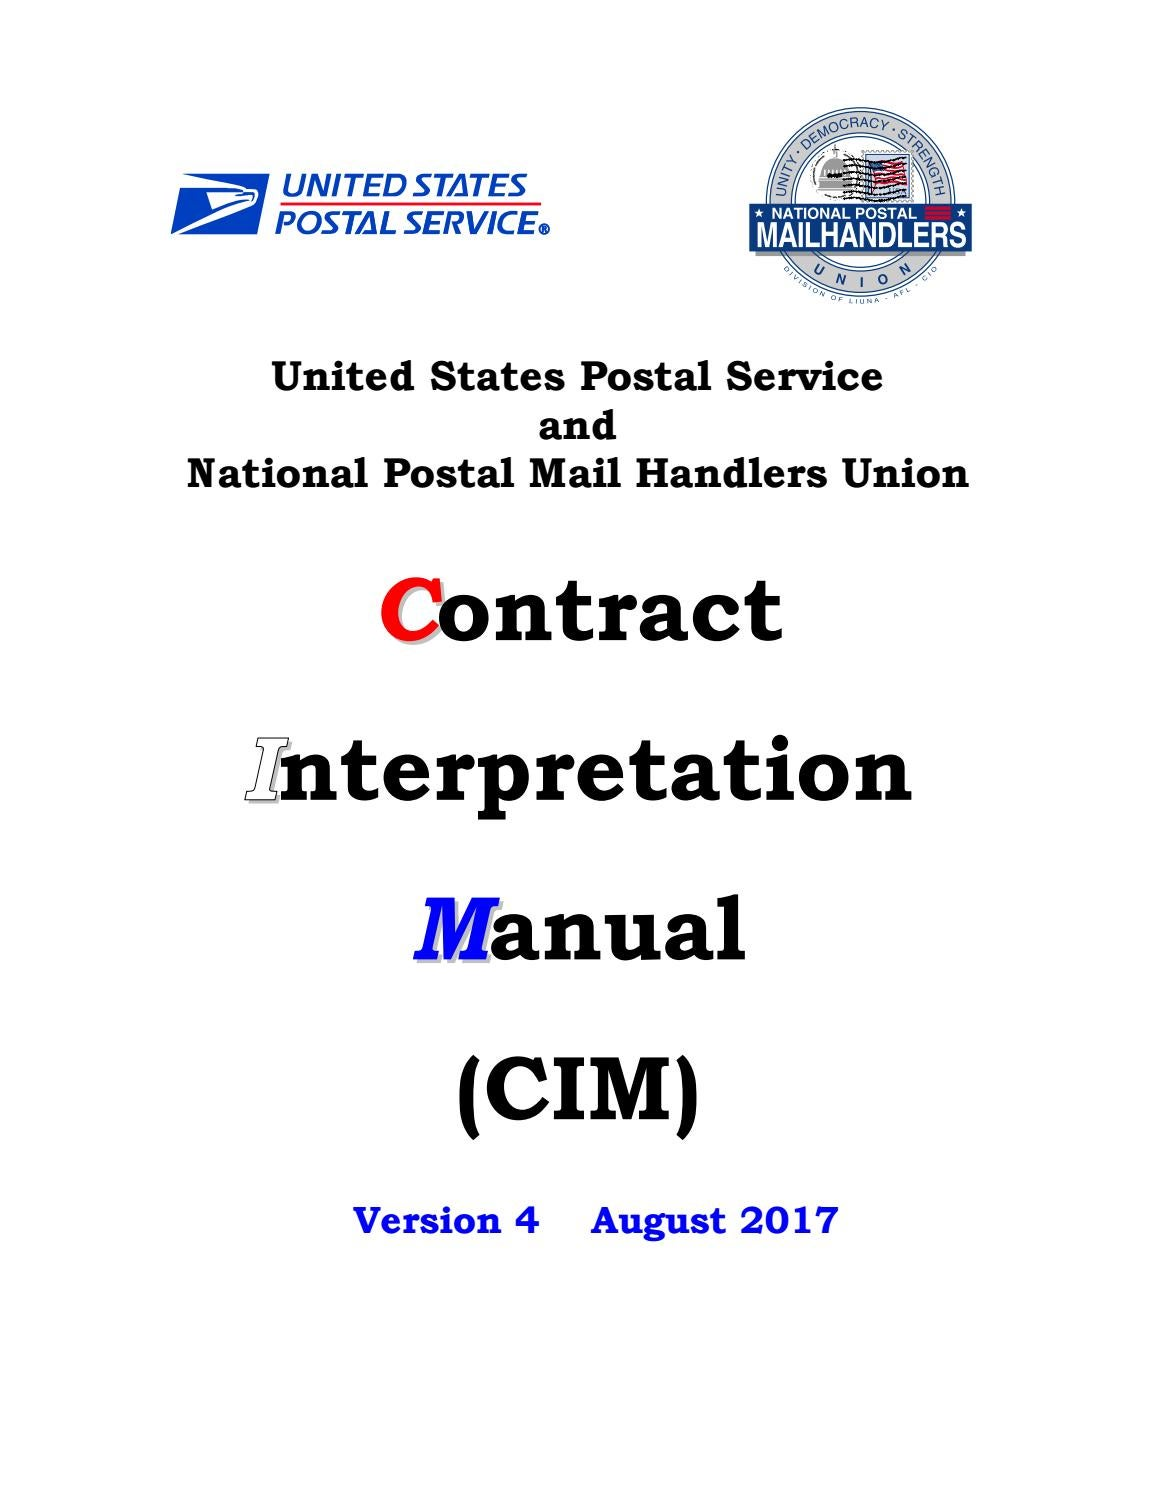 Contract Interpretation Manual v 4 by National Postal Mail